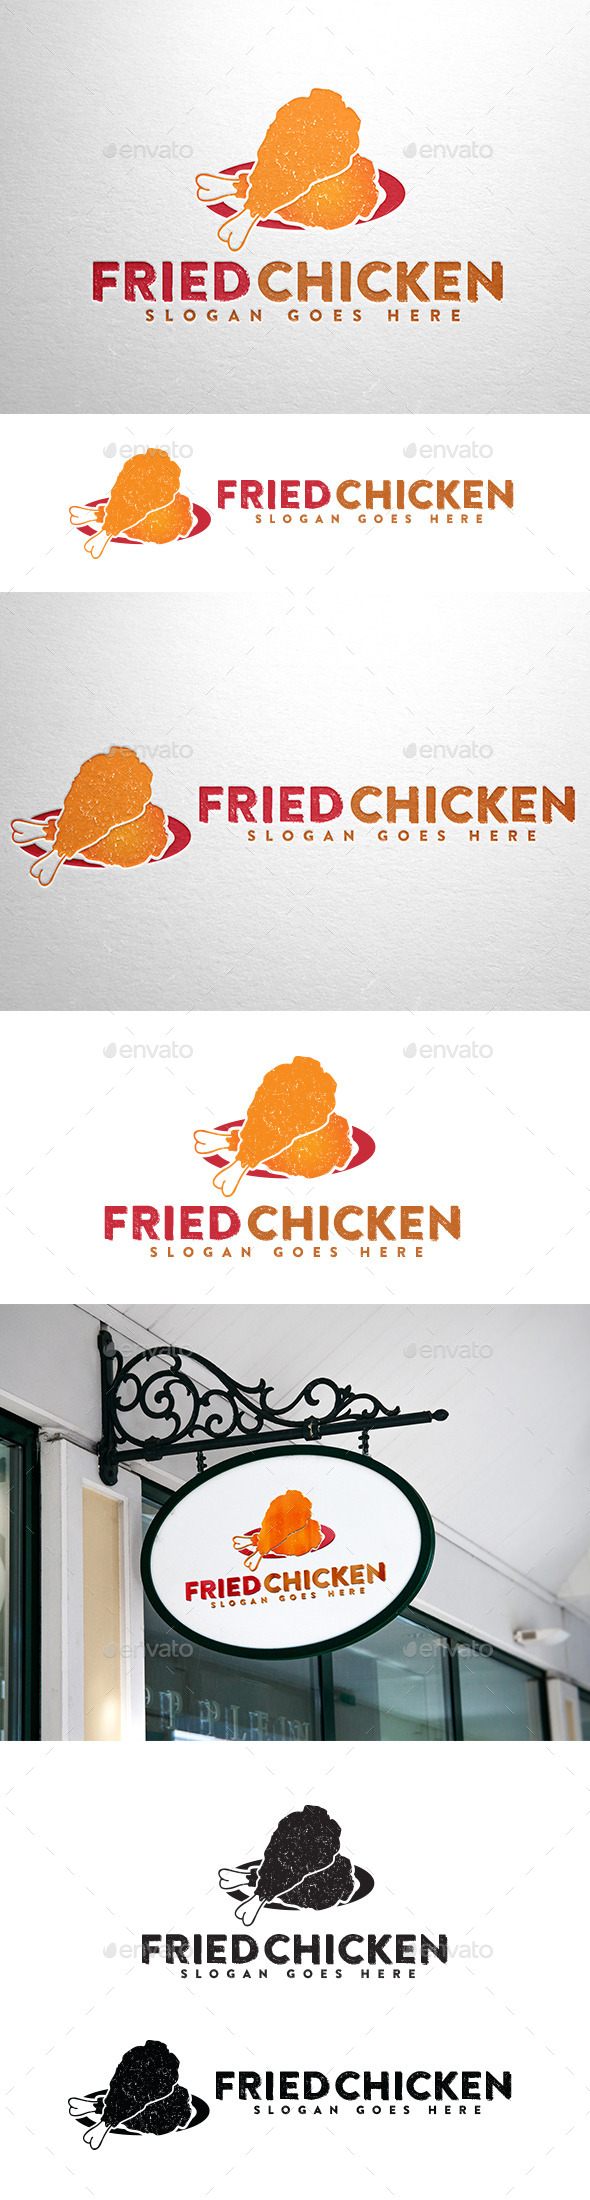 Fried Chicken Logo - Food Logo Templates